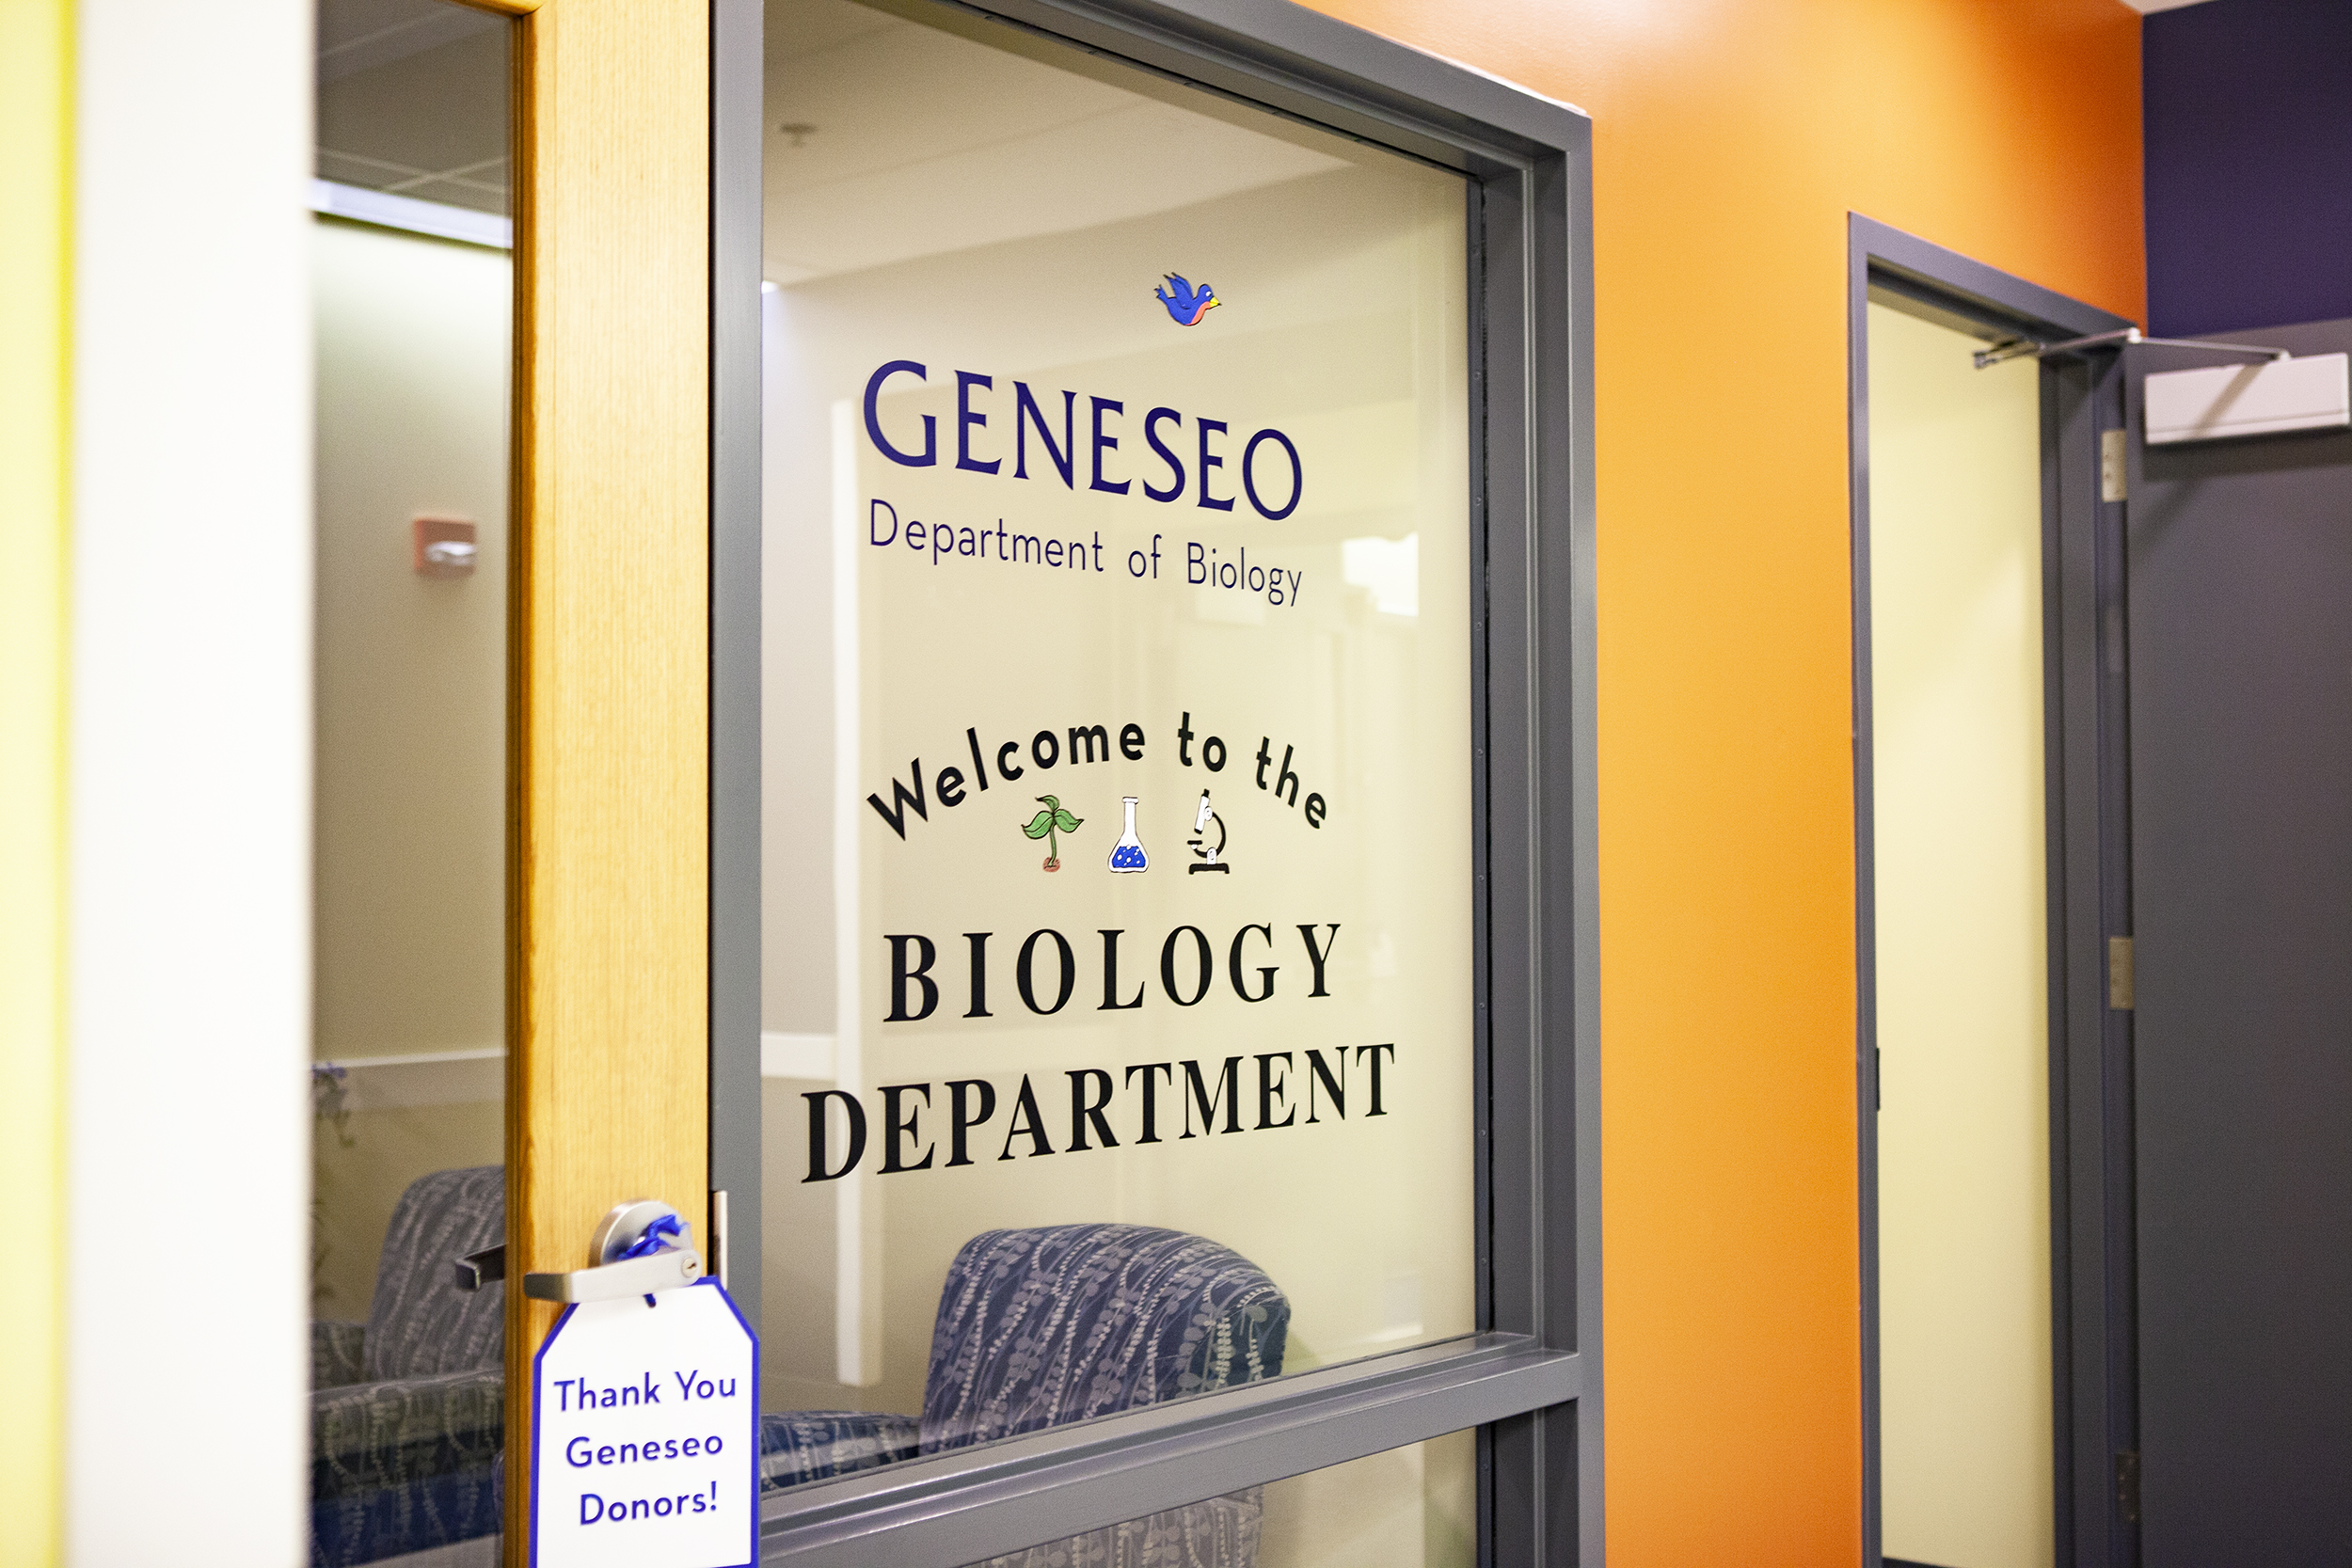 The Department of Biology (pictured above) will offer three new courses for the fall 2019 semester. The courses will include oceanography, marine biology and science communication (Josie Kwan/ Assoc. photo editor).